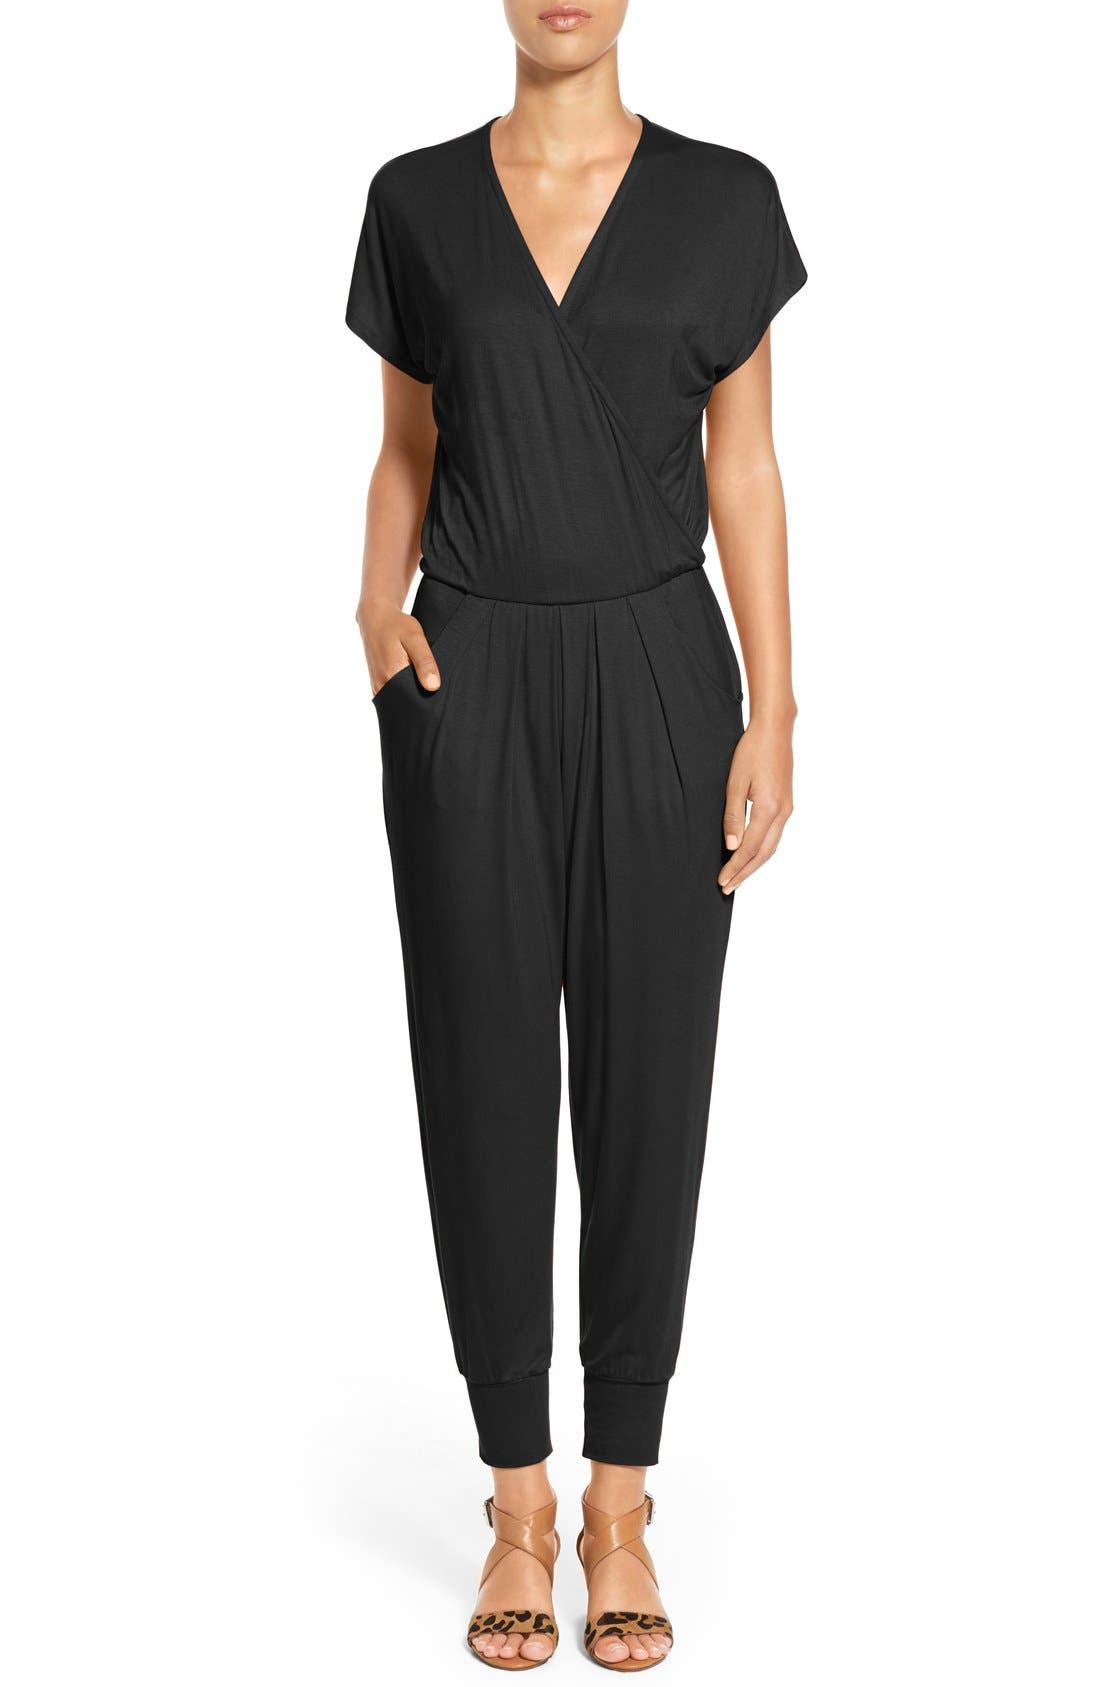 Alternate Image 1 Selected - Loveappella Short Sleeve Wrap Top Jumpsuit (Regular & Petite)